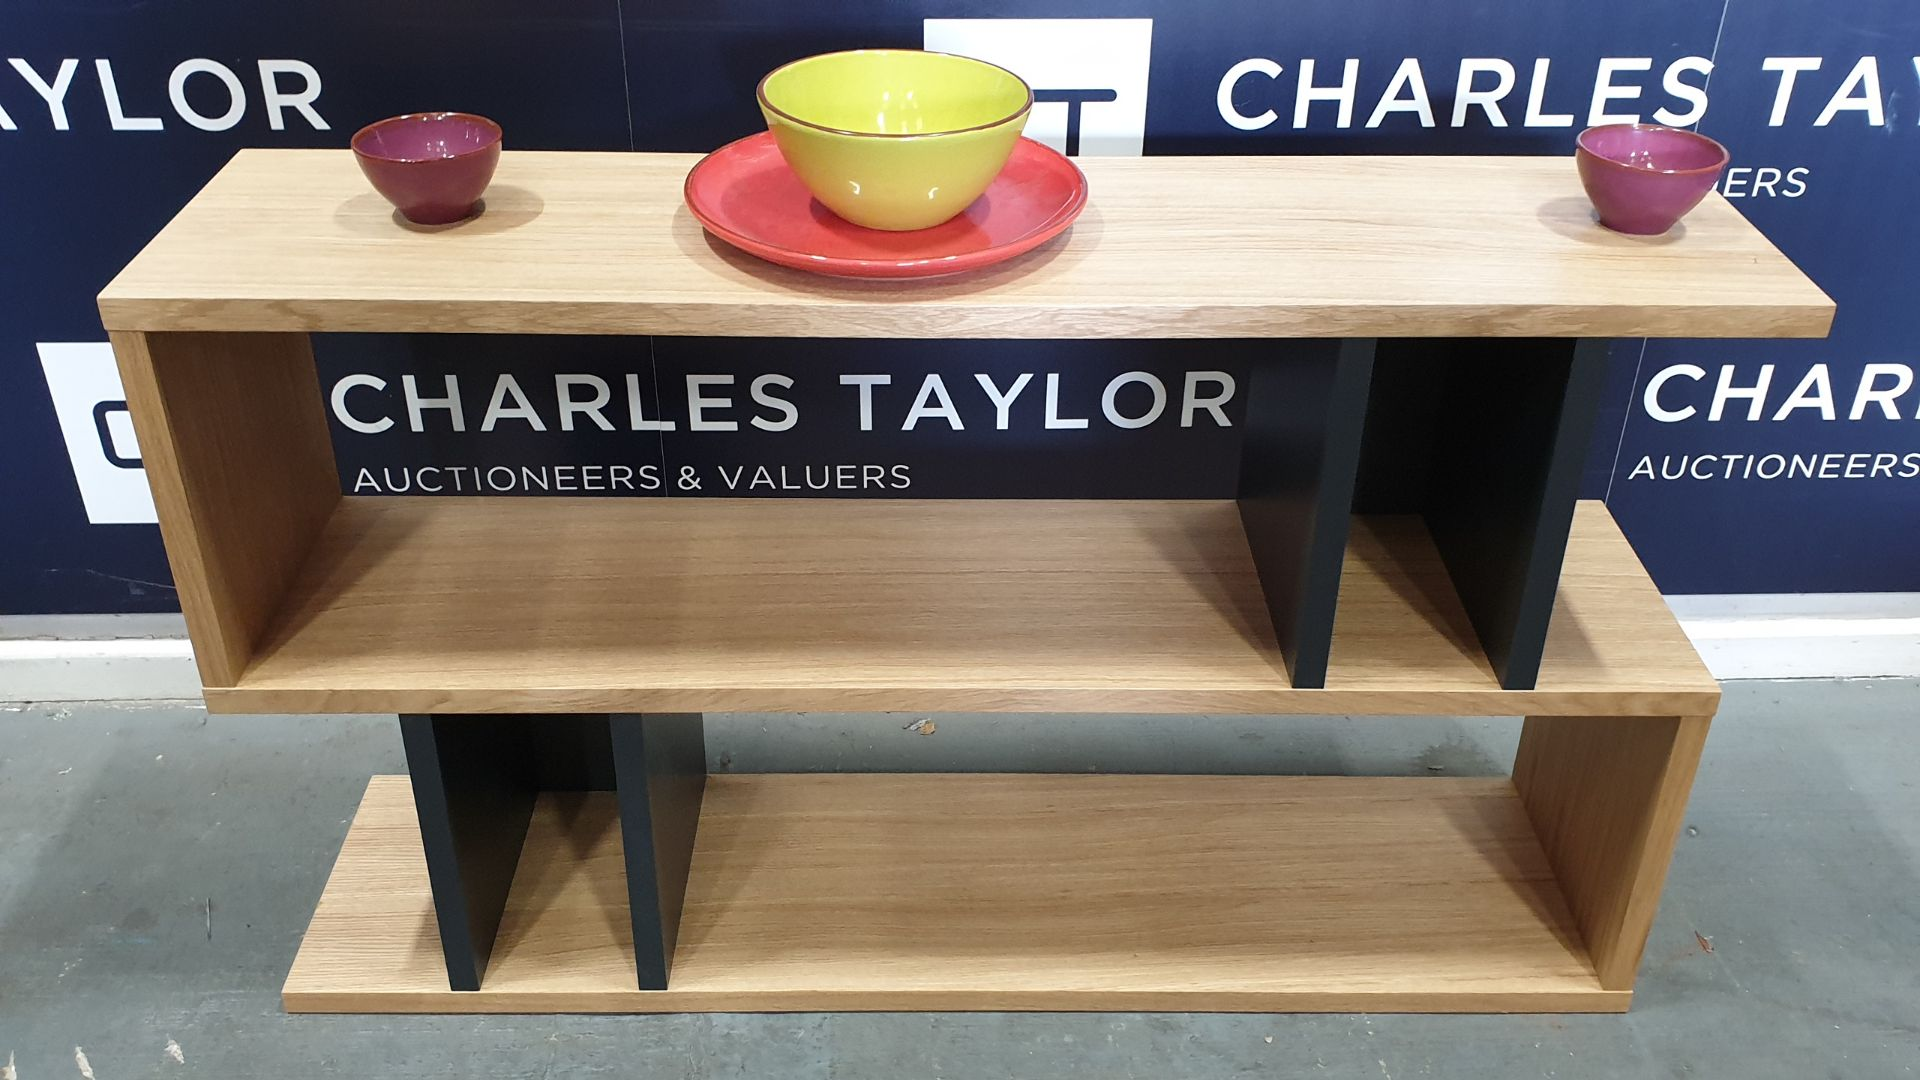 BRAND NEW CONTENT BY TERENCE CONRAN WOODEN COUNTER BALANCE, LOW SHELVING UNIT IN OAK/CHARCOAL - 30 X